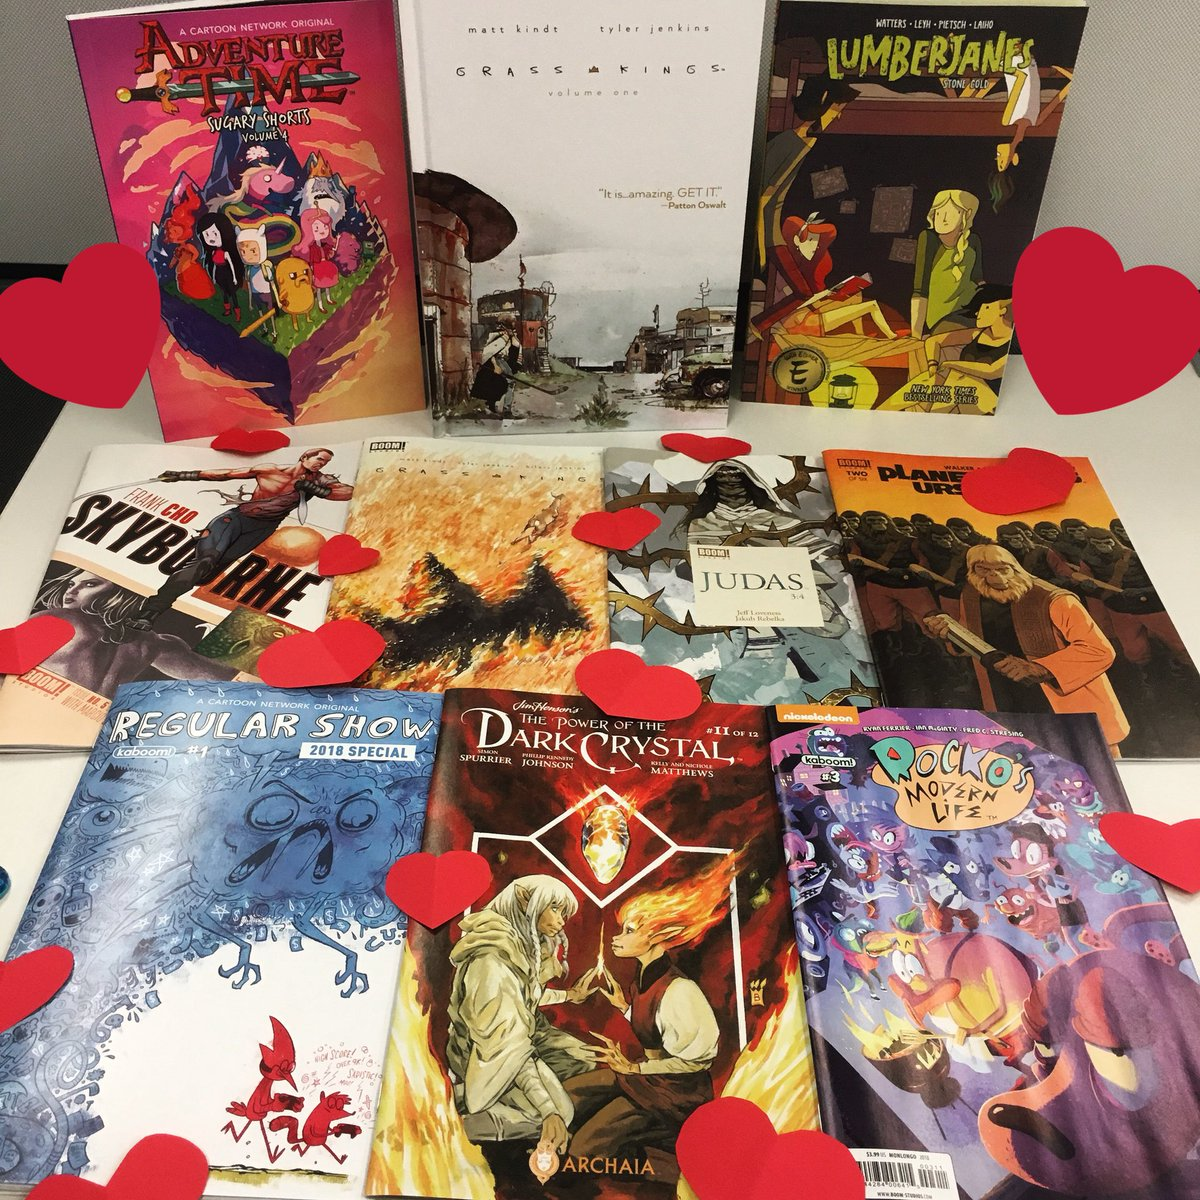 Share your love of comics this #NCBD! What #comics are on your #ValentinesDay pull list?